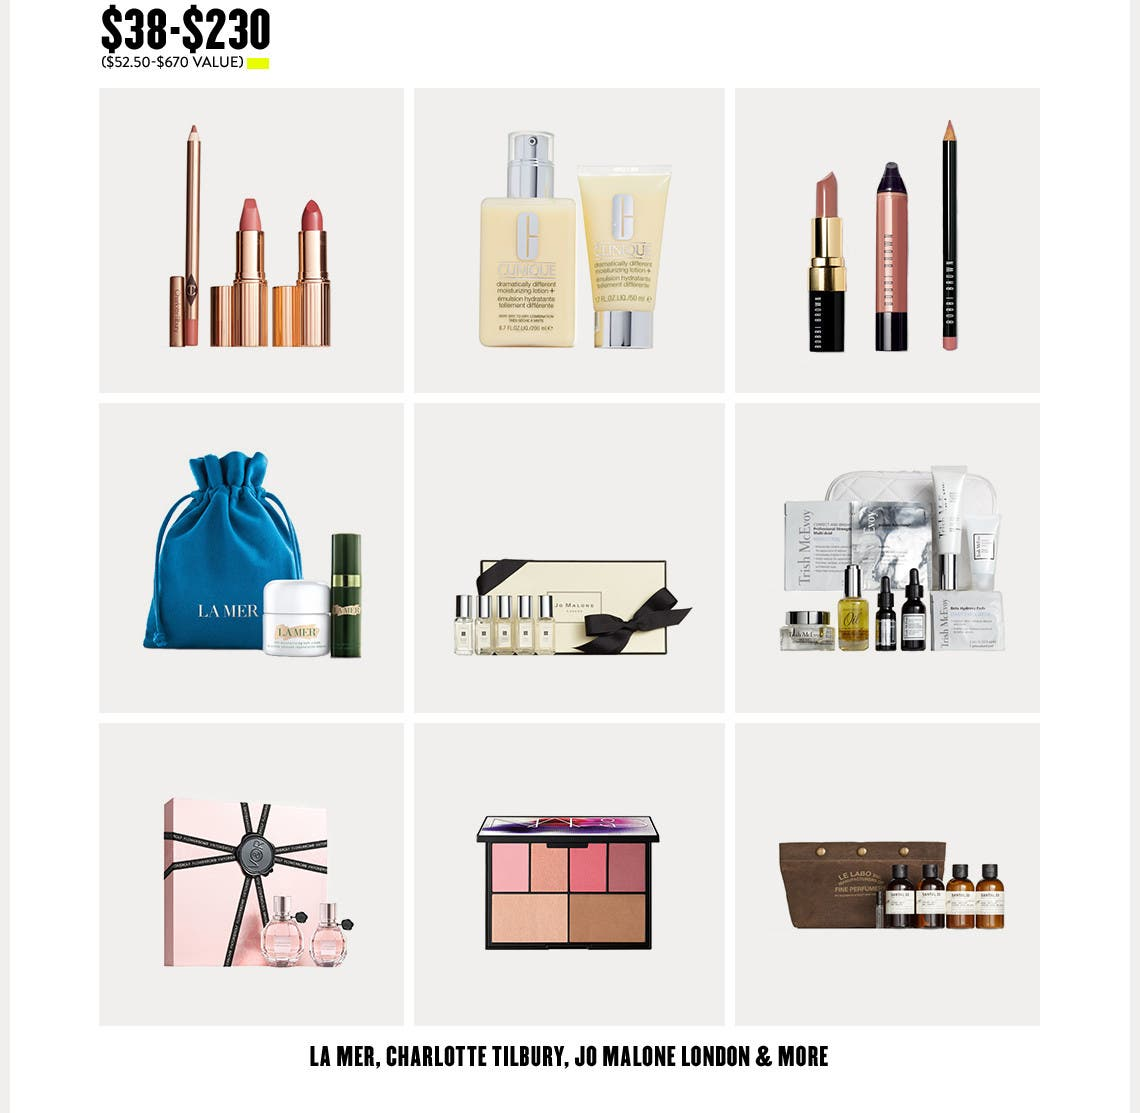 La Mer, Charlotte Tilbury, Jo Malone London and more.